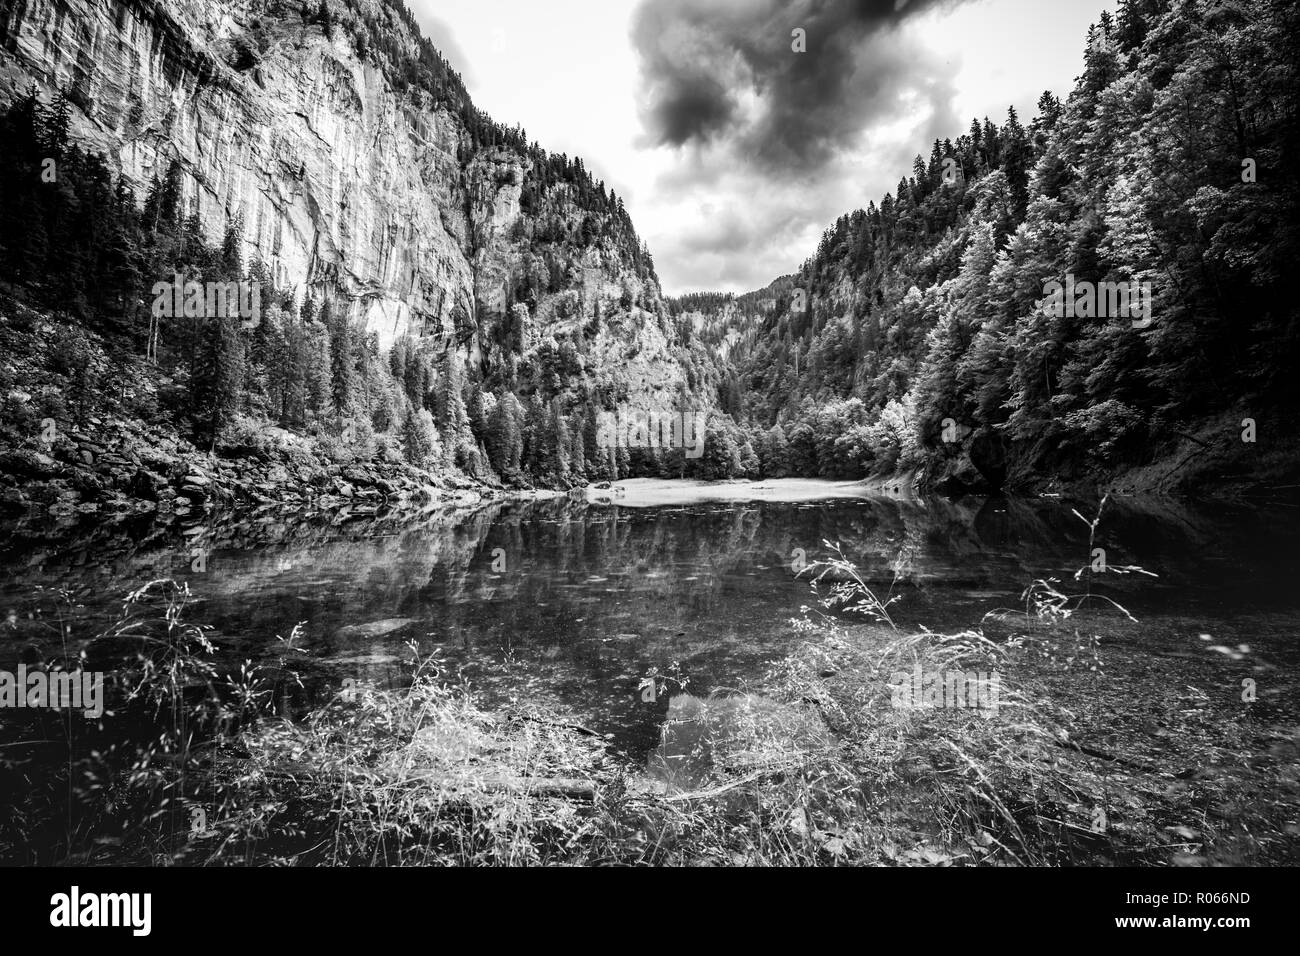 Dramatic mountain landscape, black and white image. Abstract process, pine forest and lake water reflection. Nature background Stock Photo